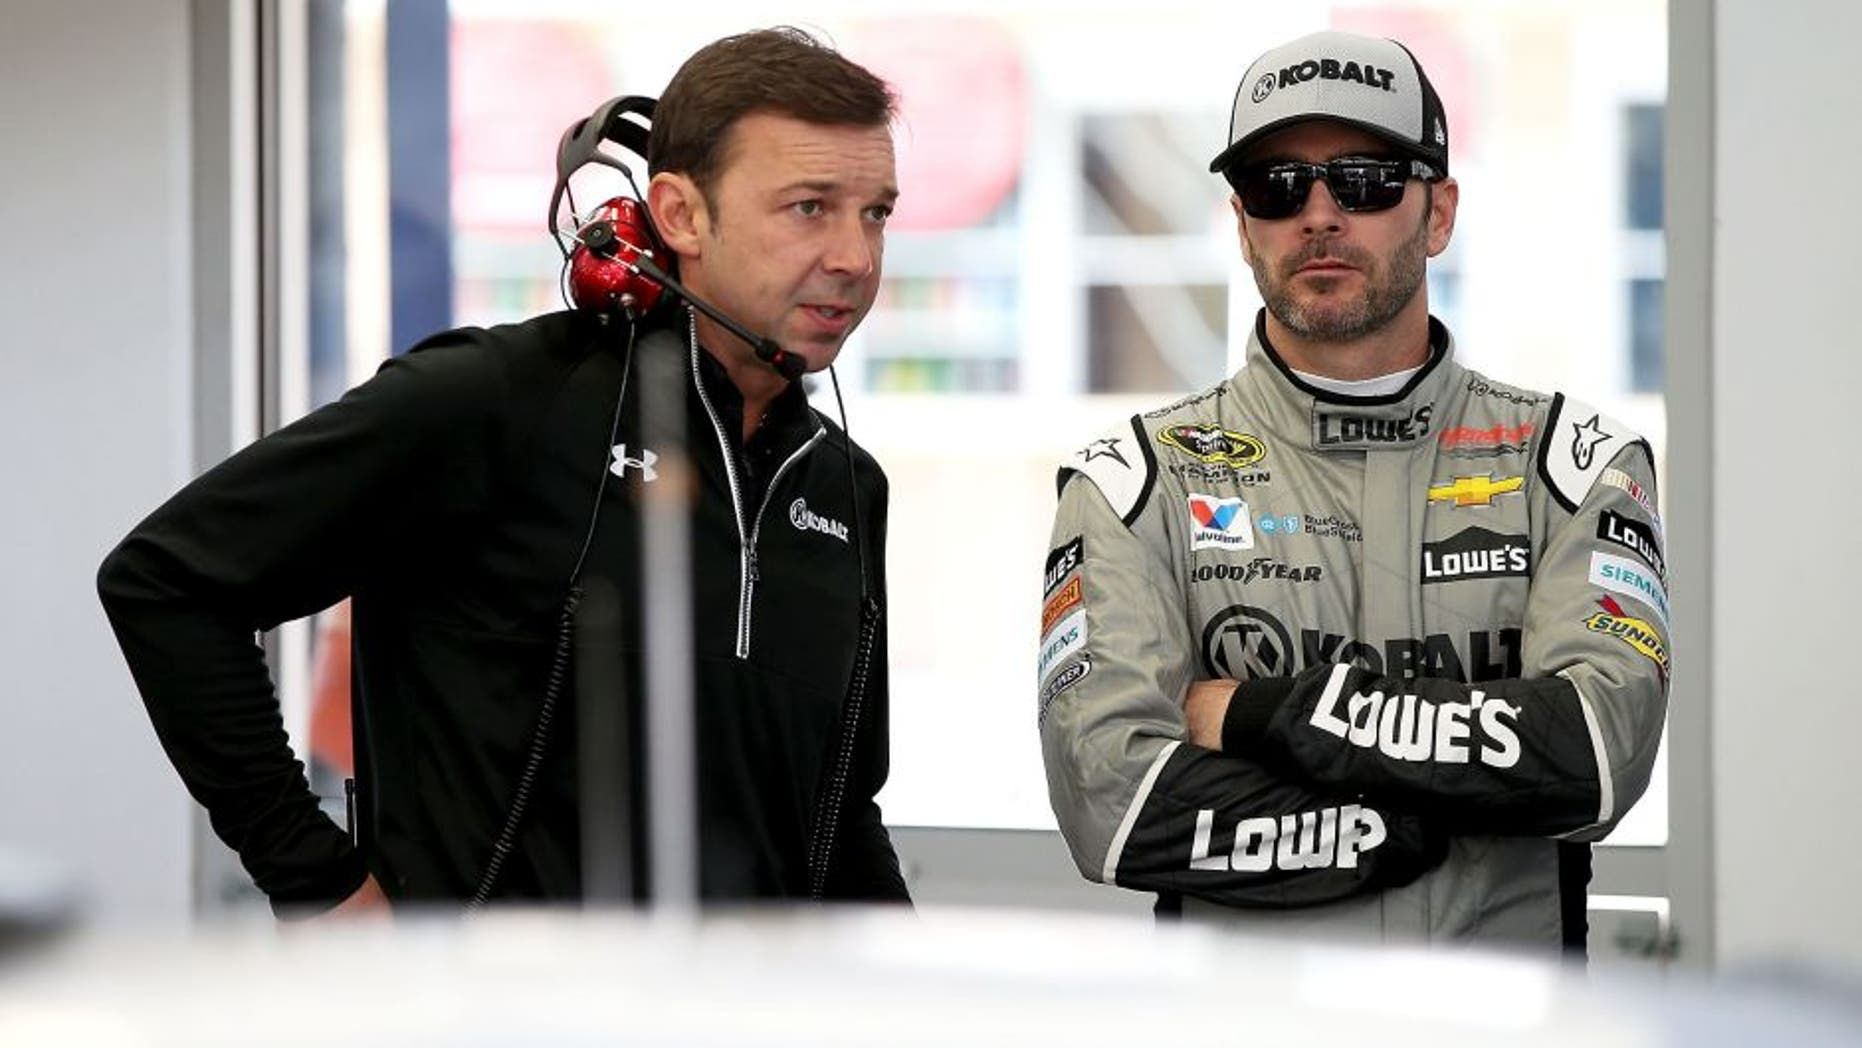 LAS VEGAS, NV - MARCH 03: (L-R) Crew Chief Chad Knous talks with Jimmie Johnson, driver of the #48 Kobalt Chevrolet, in the garage during Testing at Las Vegas Motor Speedway on March 3, 2016 in Las Vegas, Nevada. (Photo by Sean Gardner/NASCAR via Getty Images)